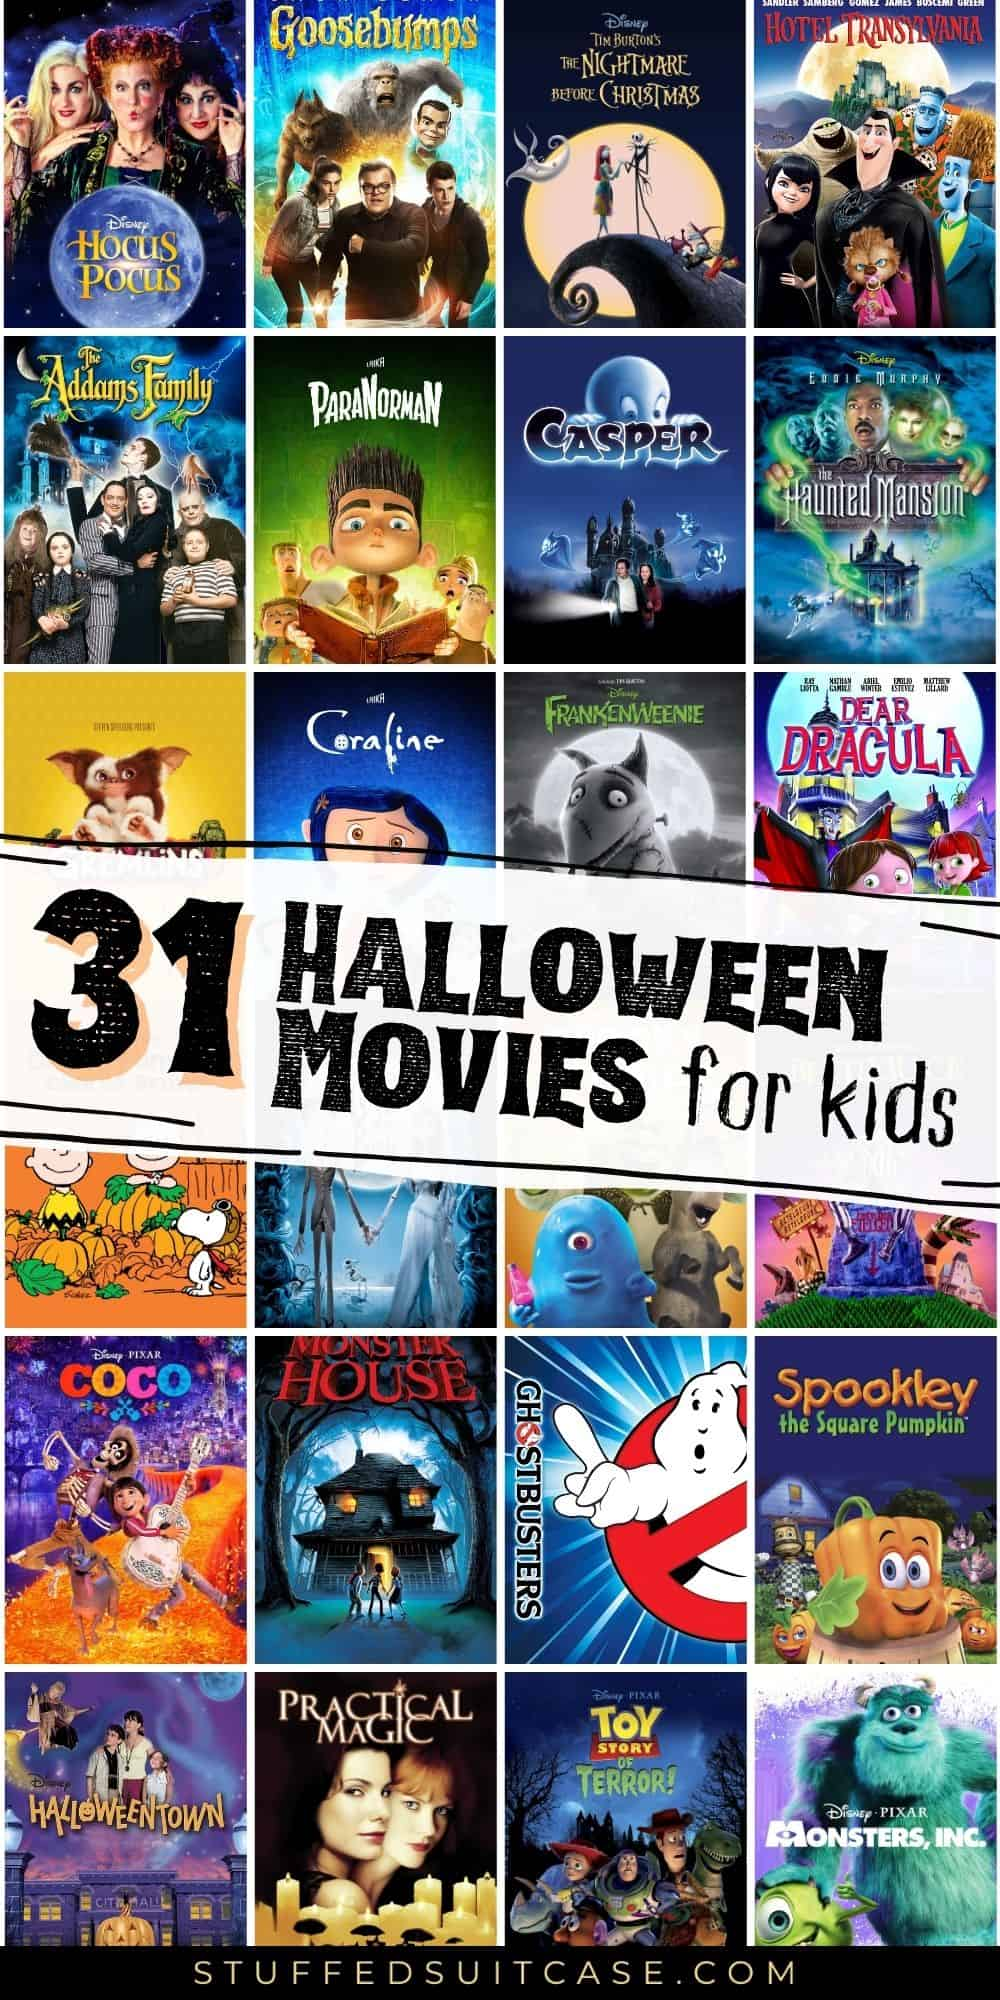 halloween movies collage pinterest image